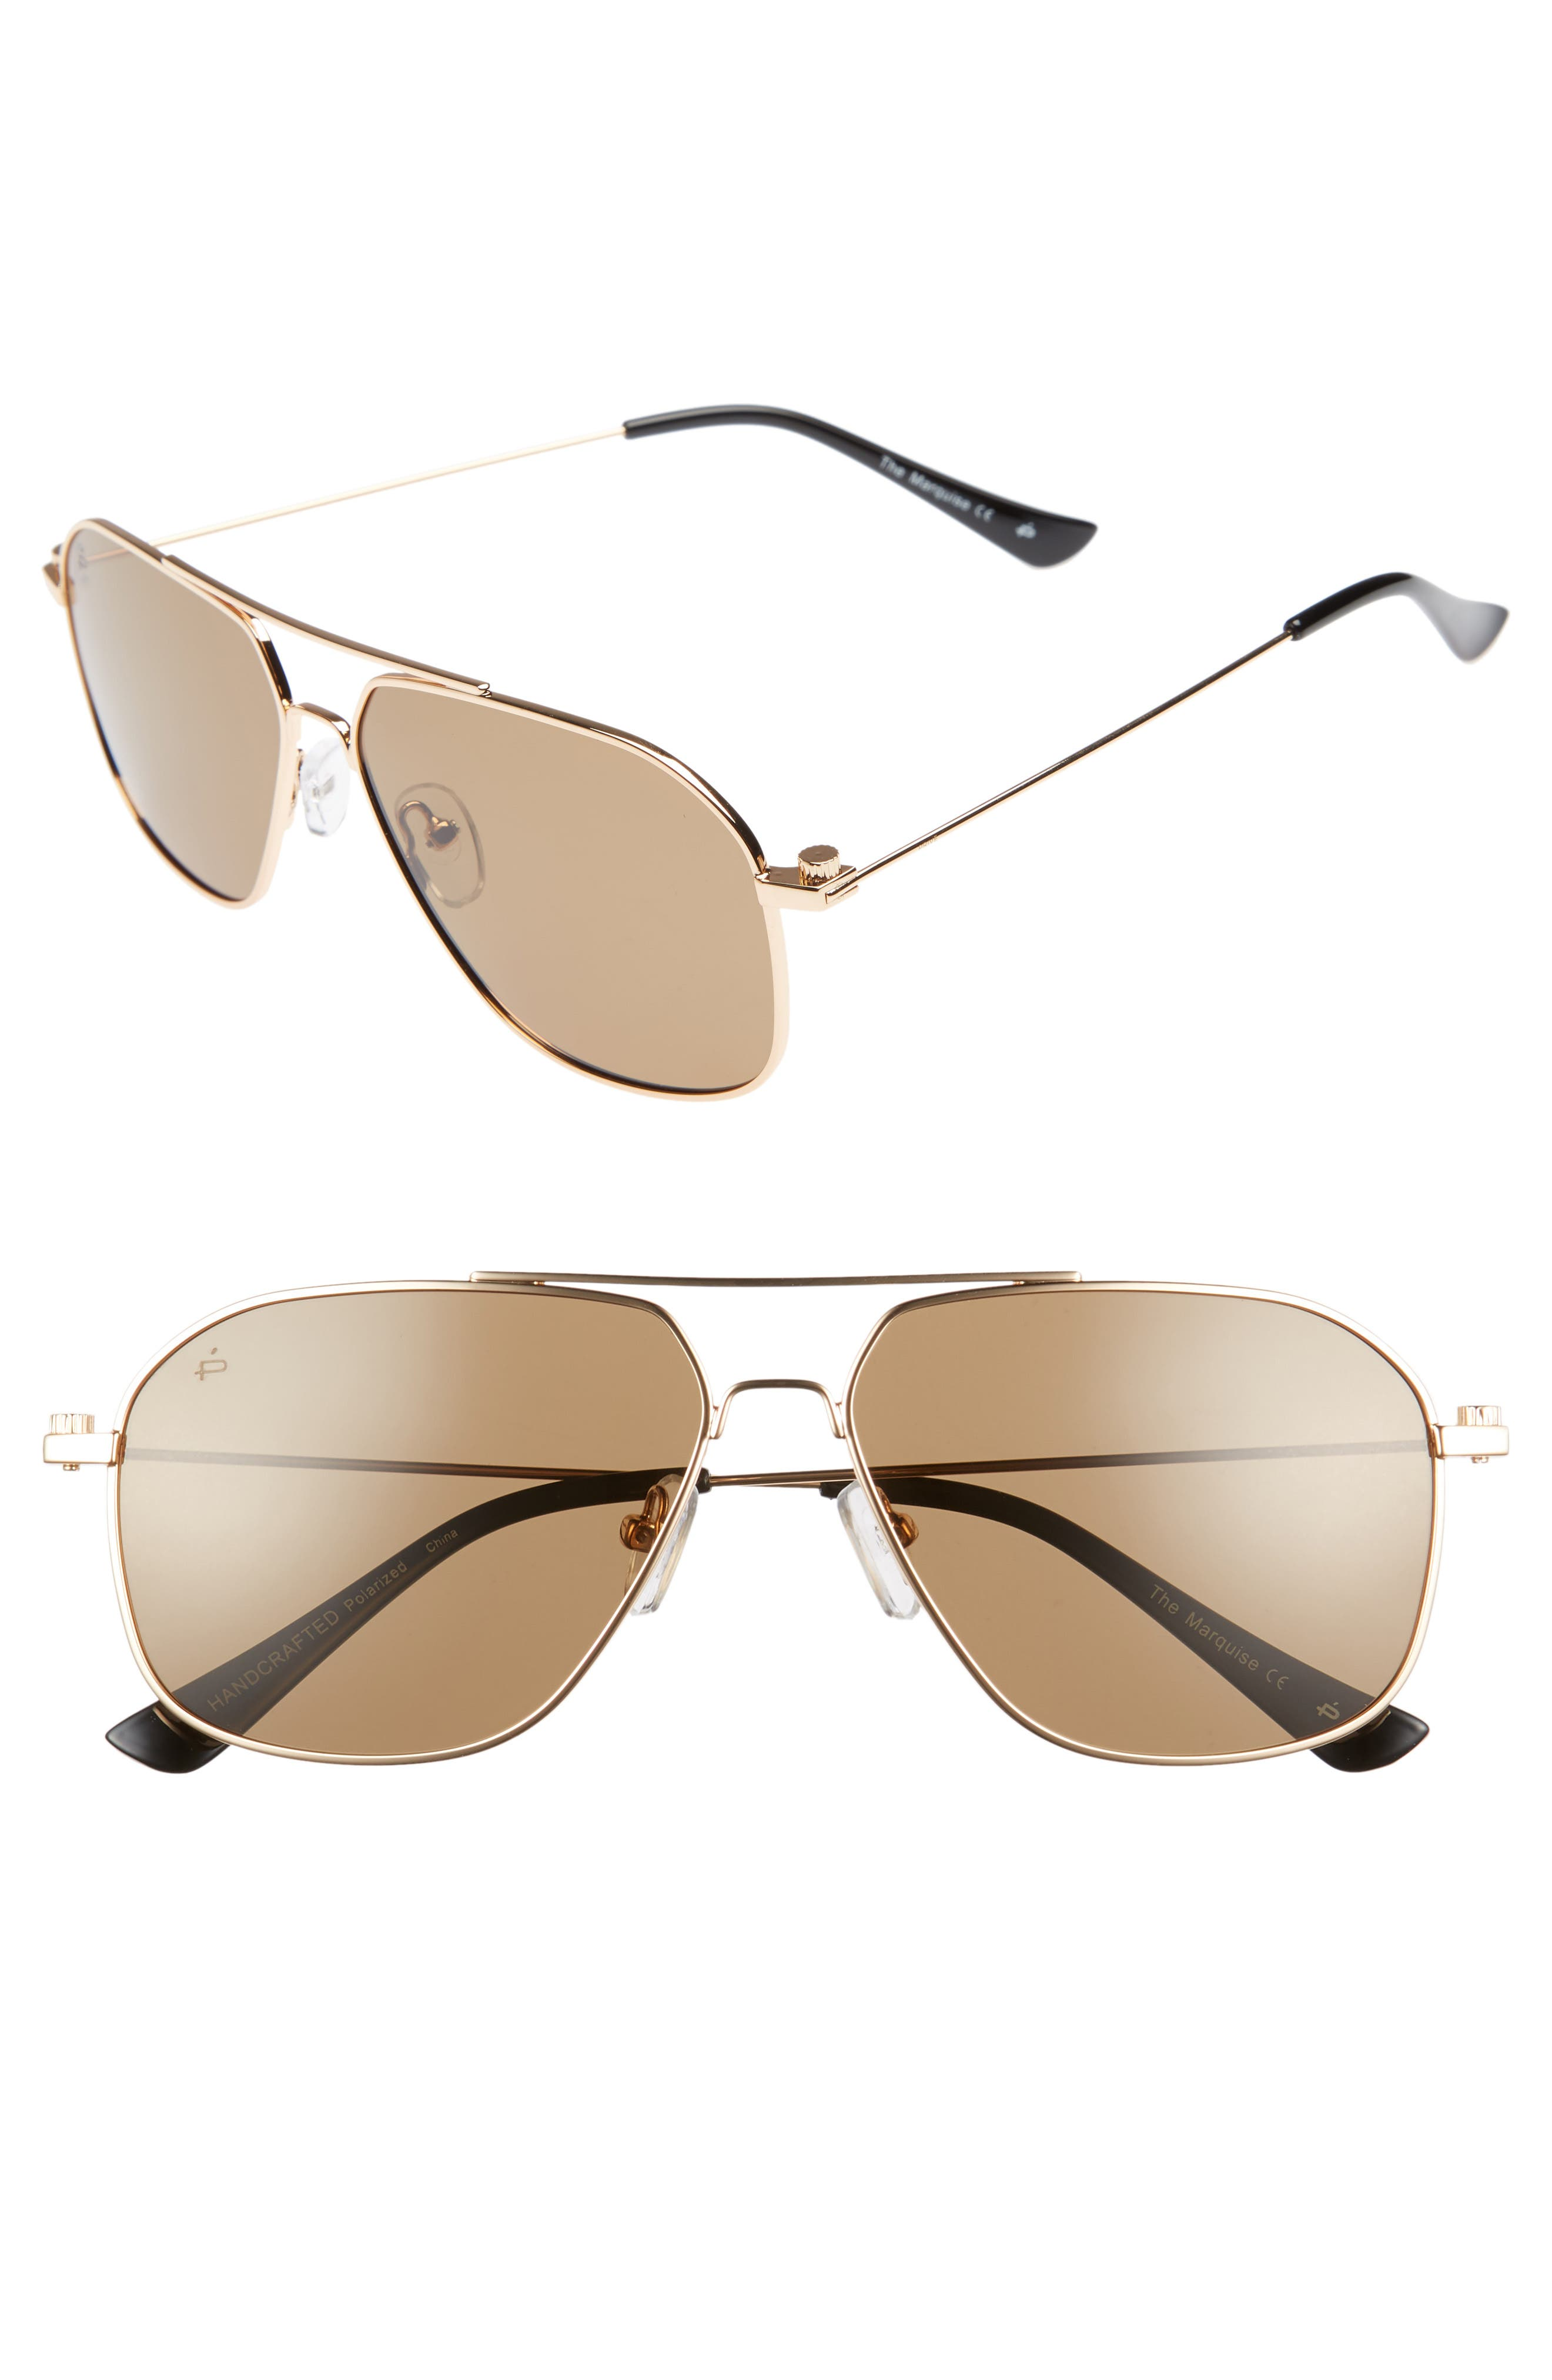 Privé Revaux The Marquise 58mm Aviator Sunglasses,                             Main thumbnail 1, color,                             710